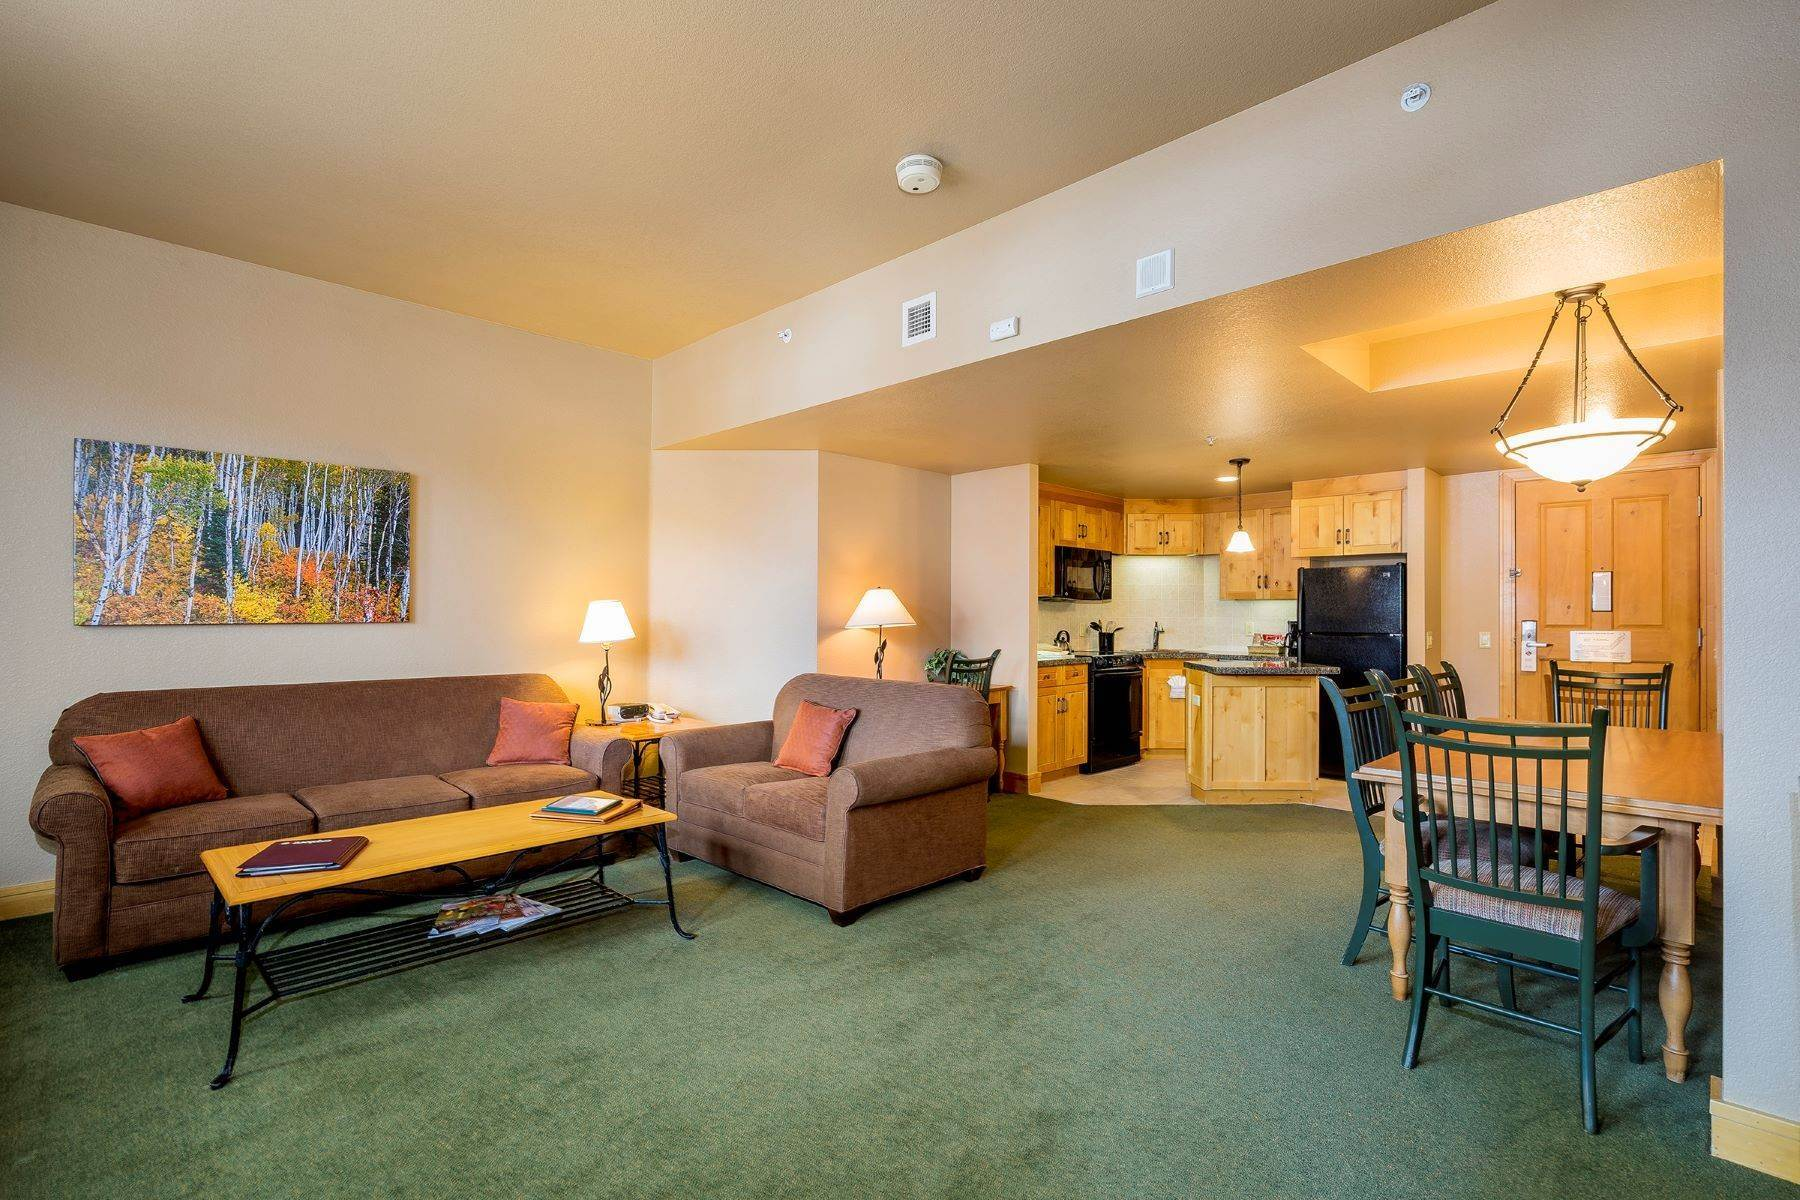 fractional ownership prop for Sale at 1/4 Share at The Steamboat Grand Resort Hotel 2300 Mt. Werner Circle 515/517 QII Steamboat Springs, Colorado 80487 United States